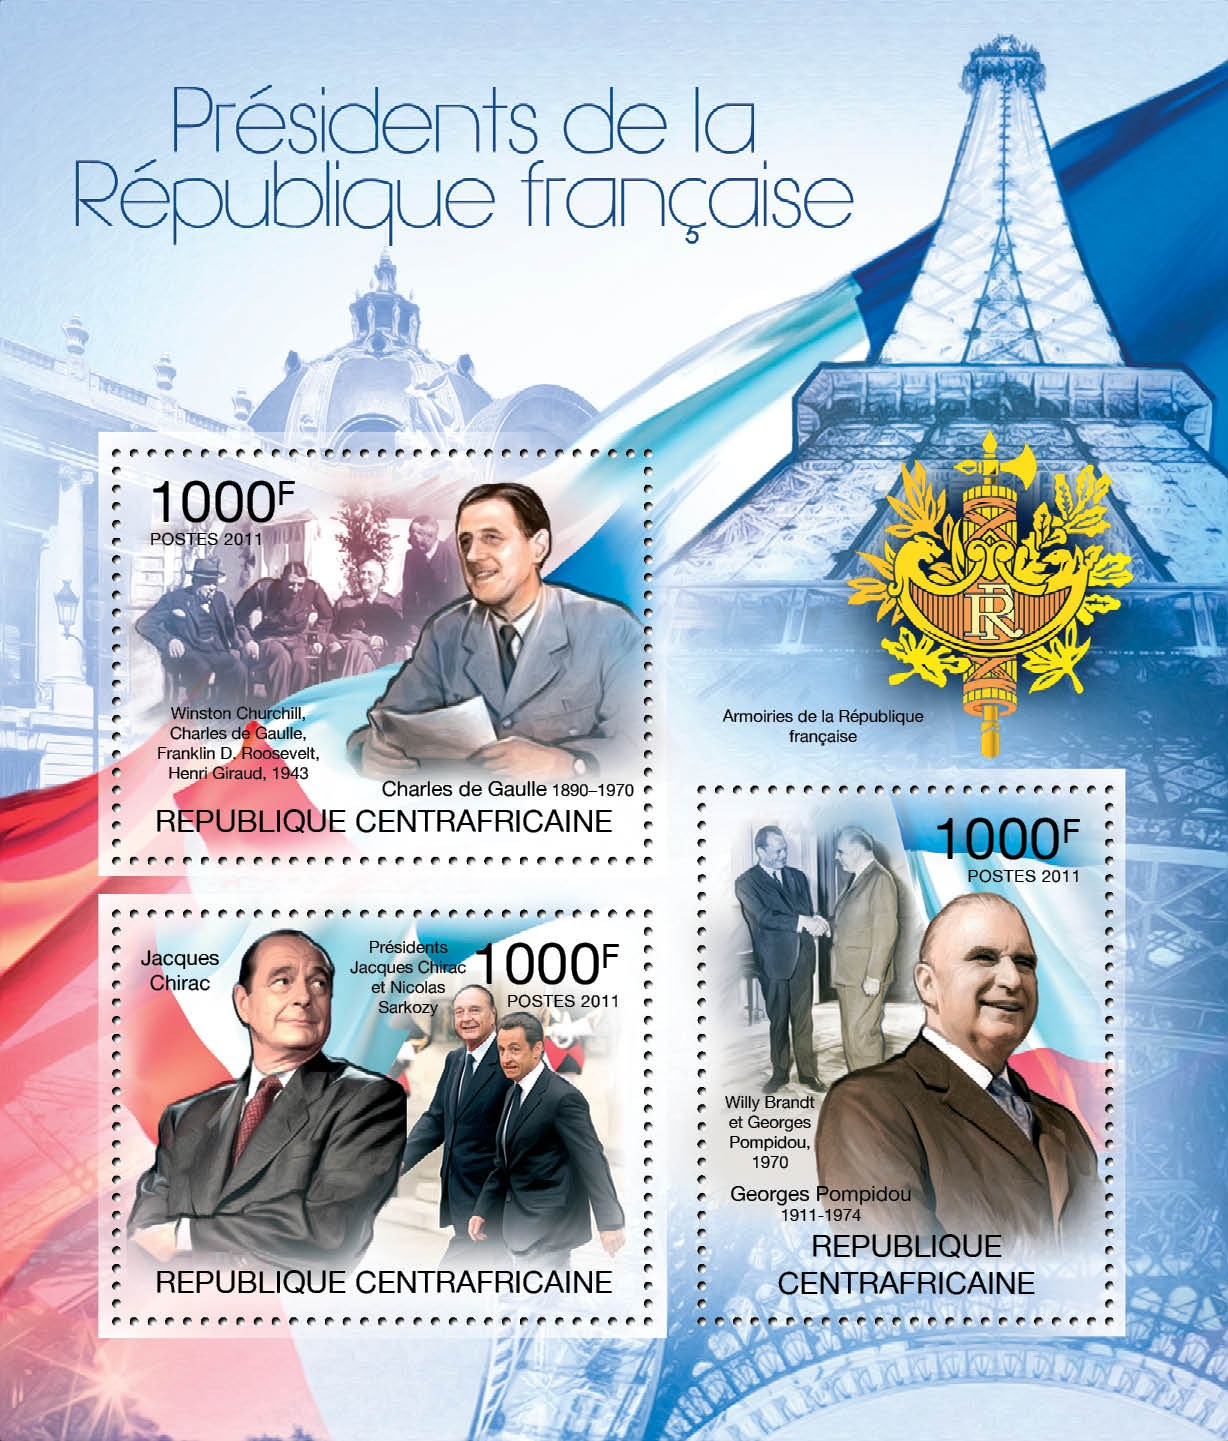 French Presidents, (Cahrles de Gaulle, Jacques Chirac, Georges Pompidou). - Issue of Central African republic postage stamps